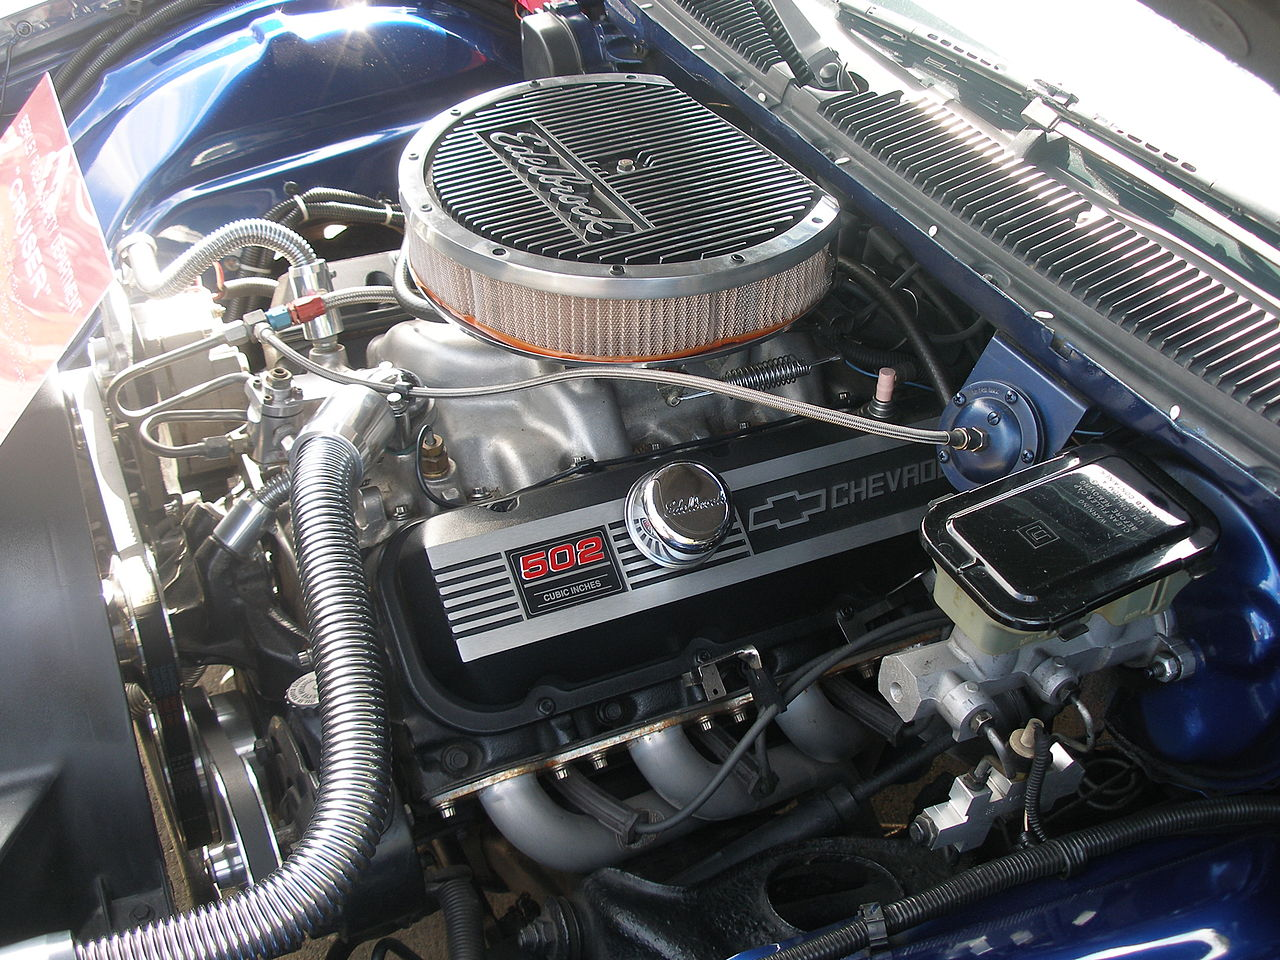 All Chevy 1972 chevy 402 engine specs : Chevrolet Big-Block engine | Car guy's paradise